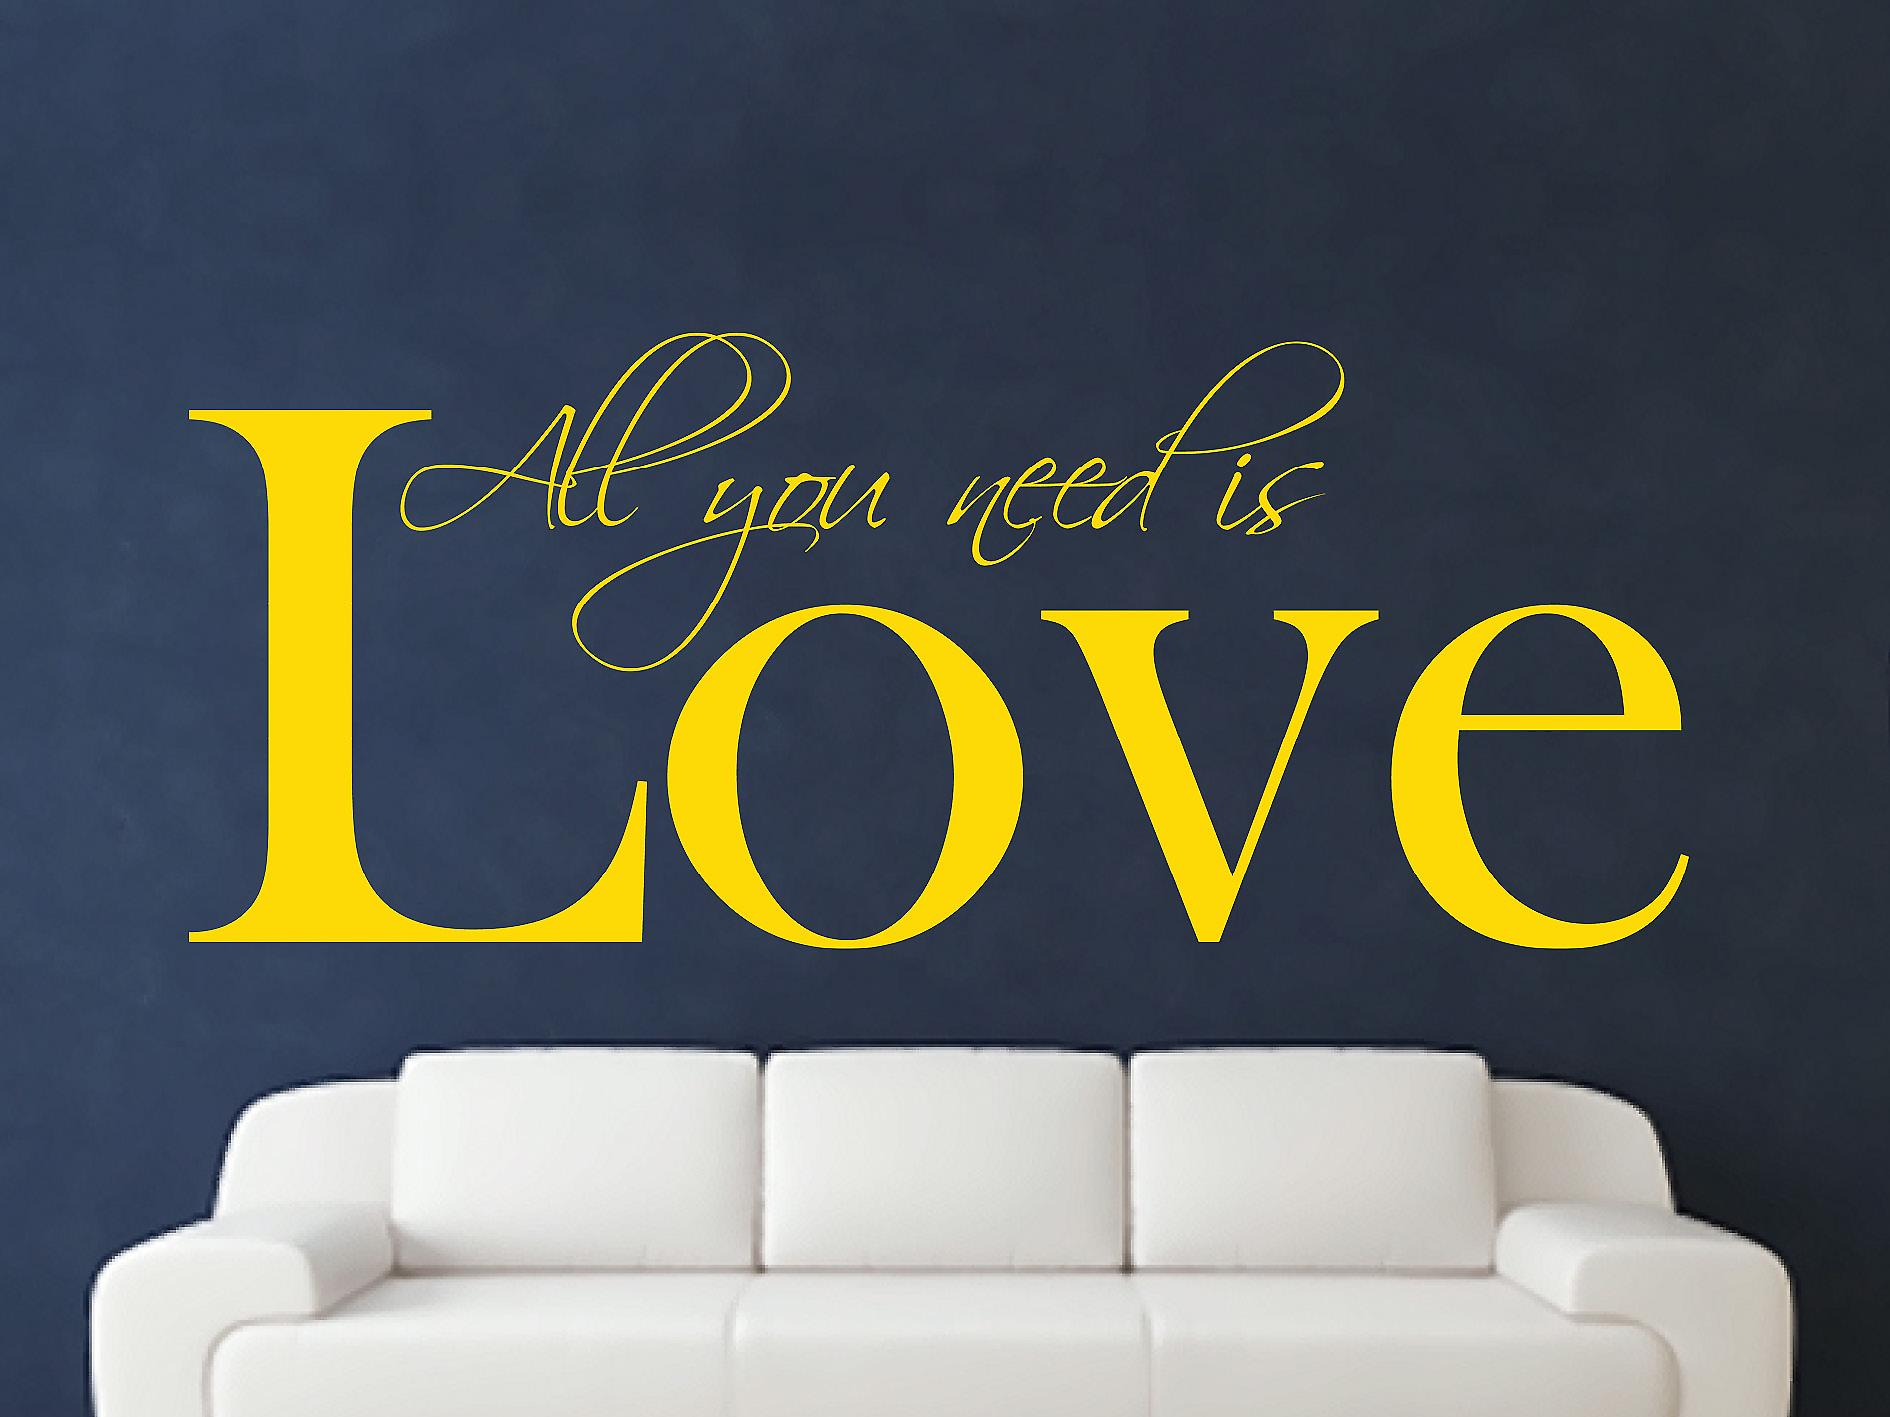 All You Need Art Wall Sticker - Jaune foncé